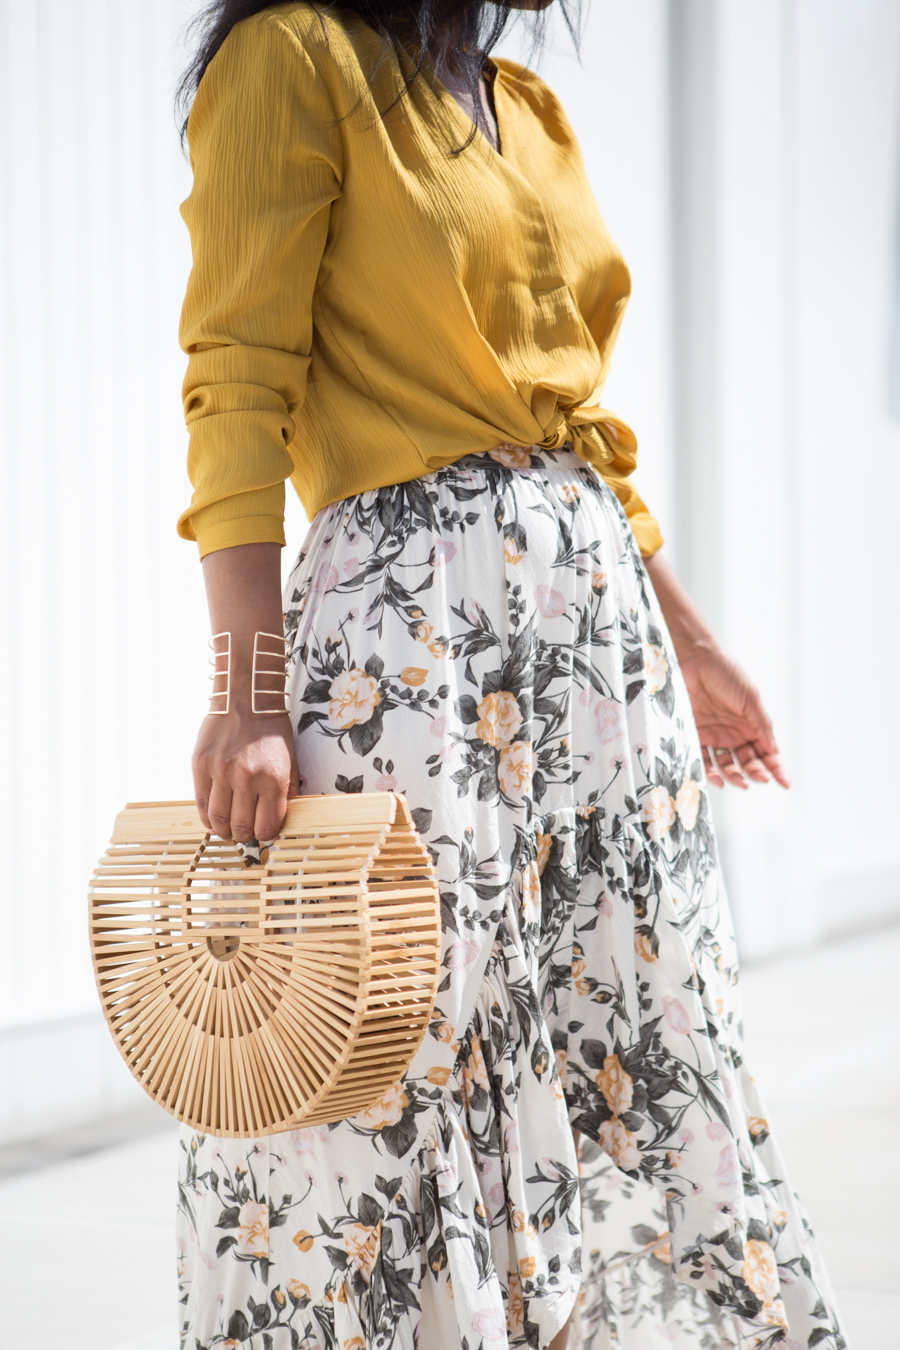 ruffles, tiered, maxi skirt, petite fashion, petite style, petite-friendly, petite maxi skirt, satin sliders, satin sandals, yellow, gold, affordable style, trendy, feminine style, colorful style, style tips, ann taylor, style under $50